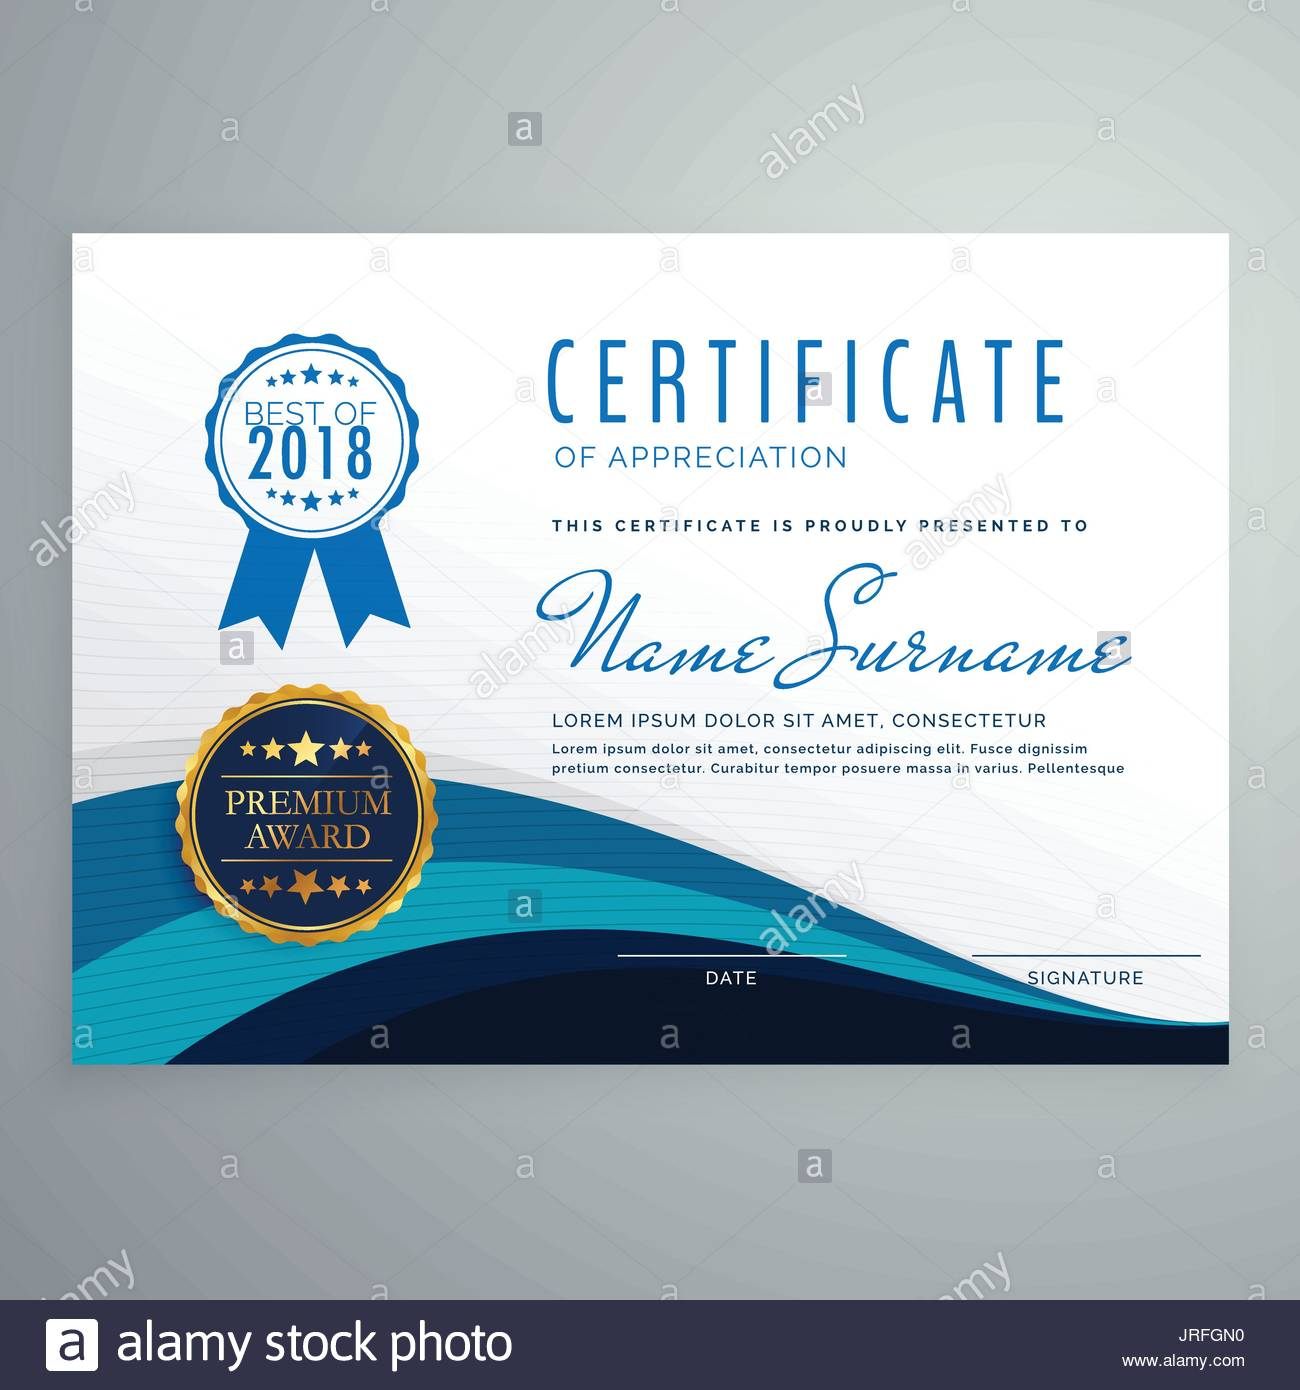 Elegant Appreciation Certificate Template Design Stockfotos ...